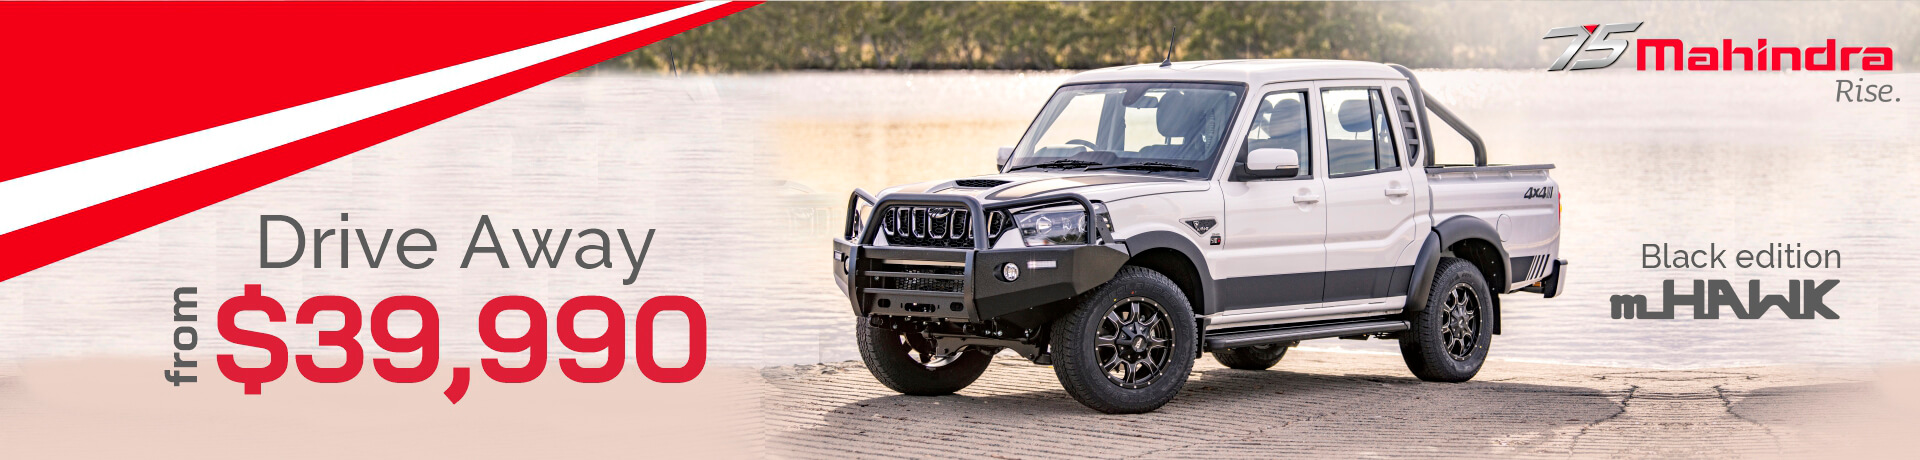 Pikup S10+ Dual Cab Black Edition mHAKW. View all current Mahindra Offers.